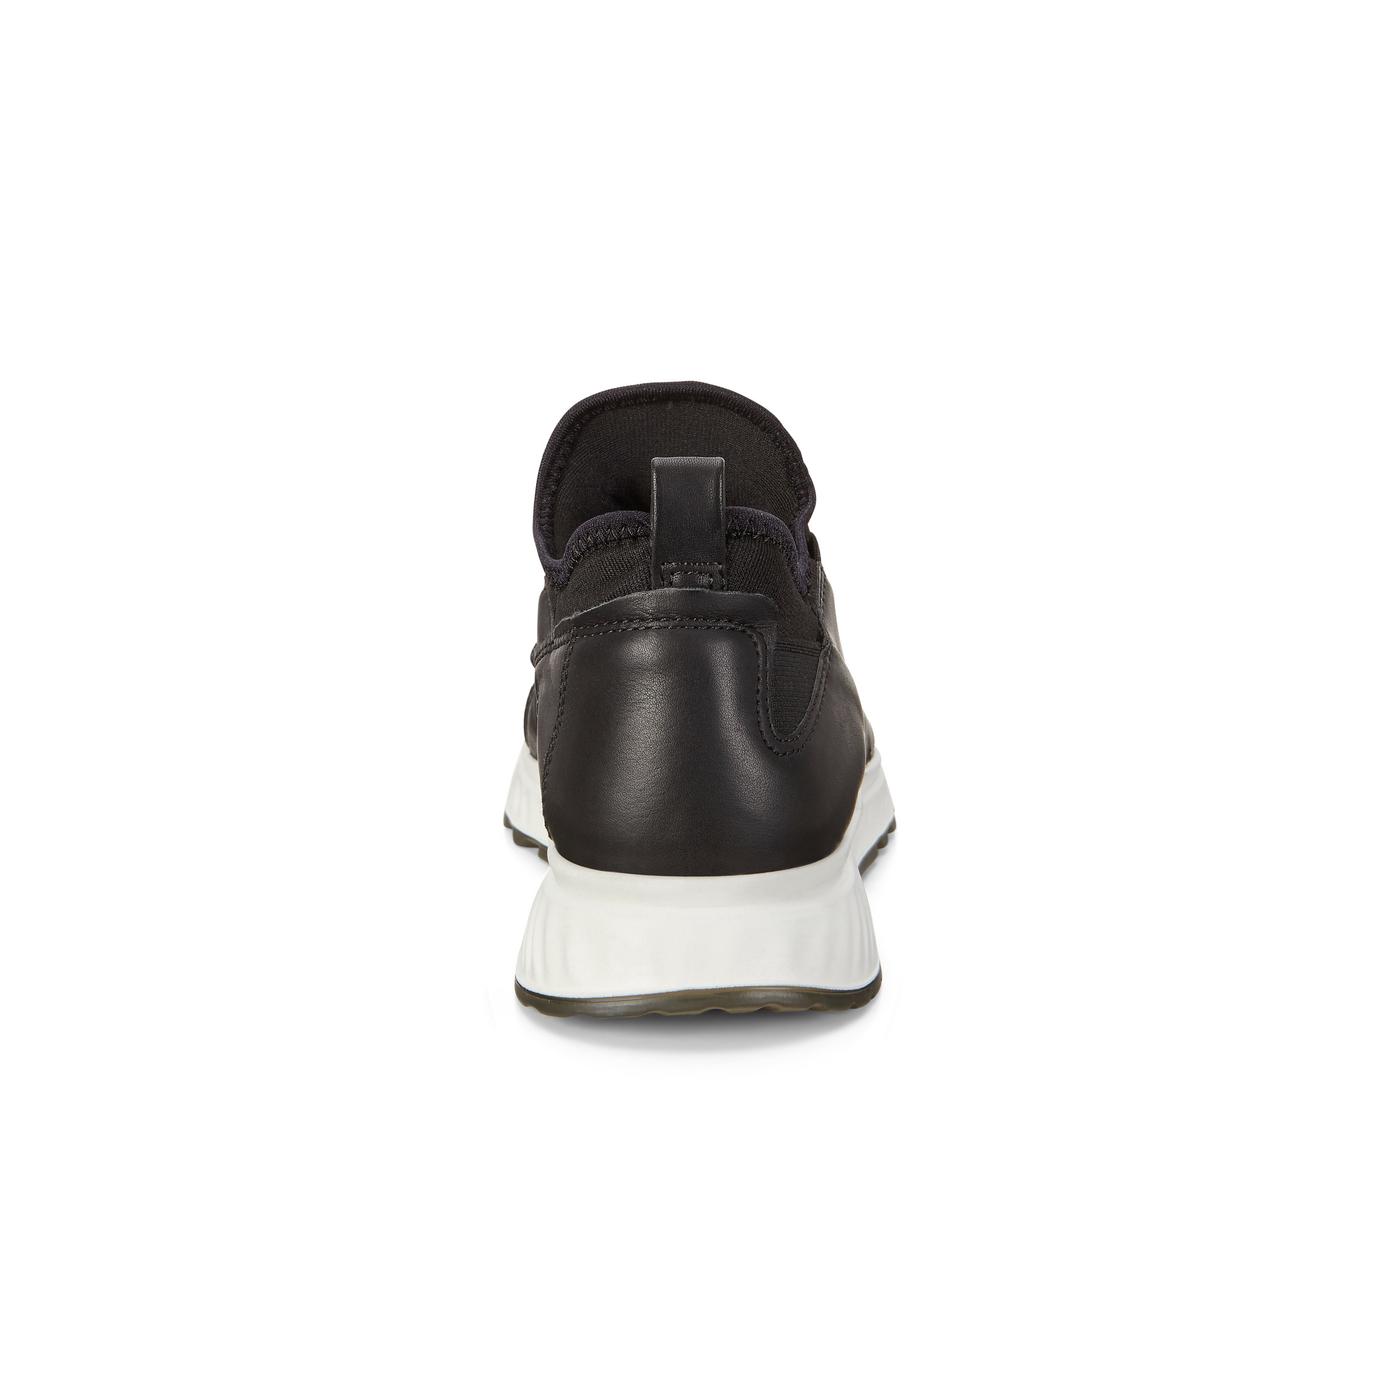 ECCO Womens ST.1 Toggle